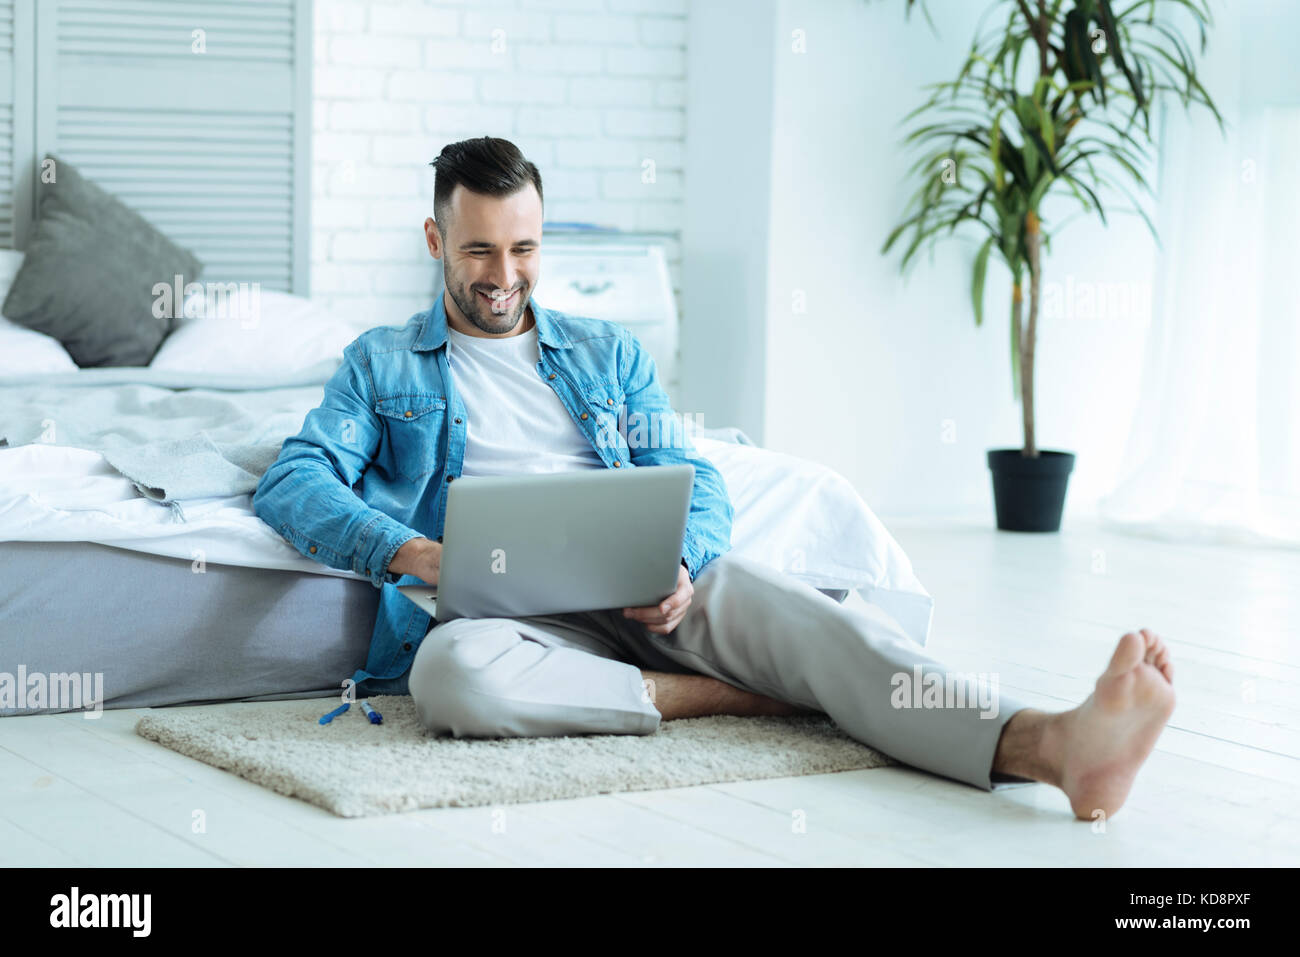 Happy self employed man smiling while working from home - Stock Image